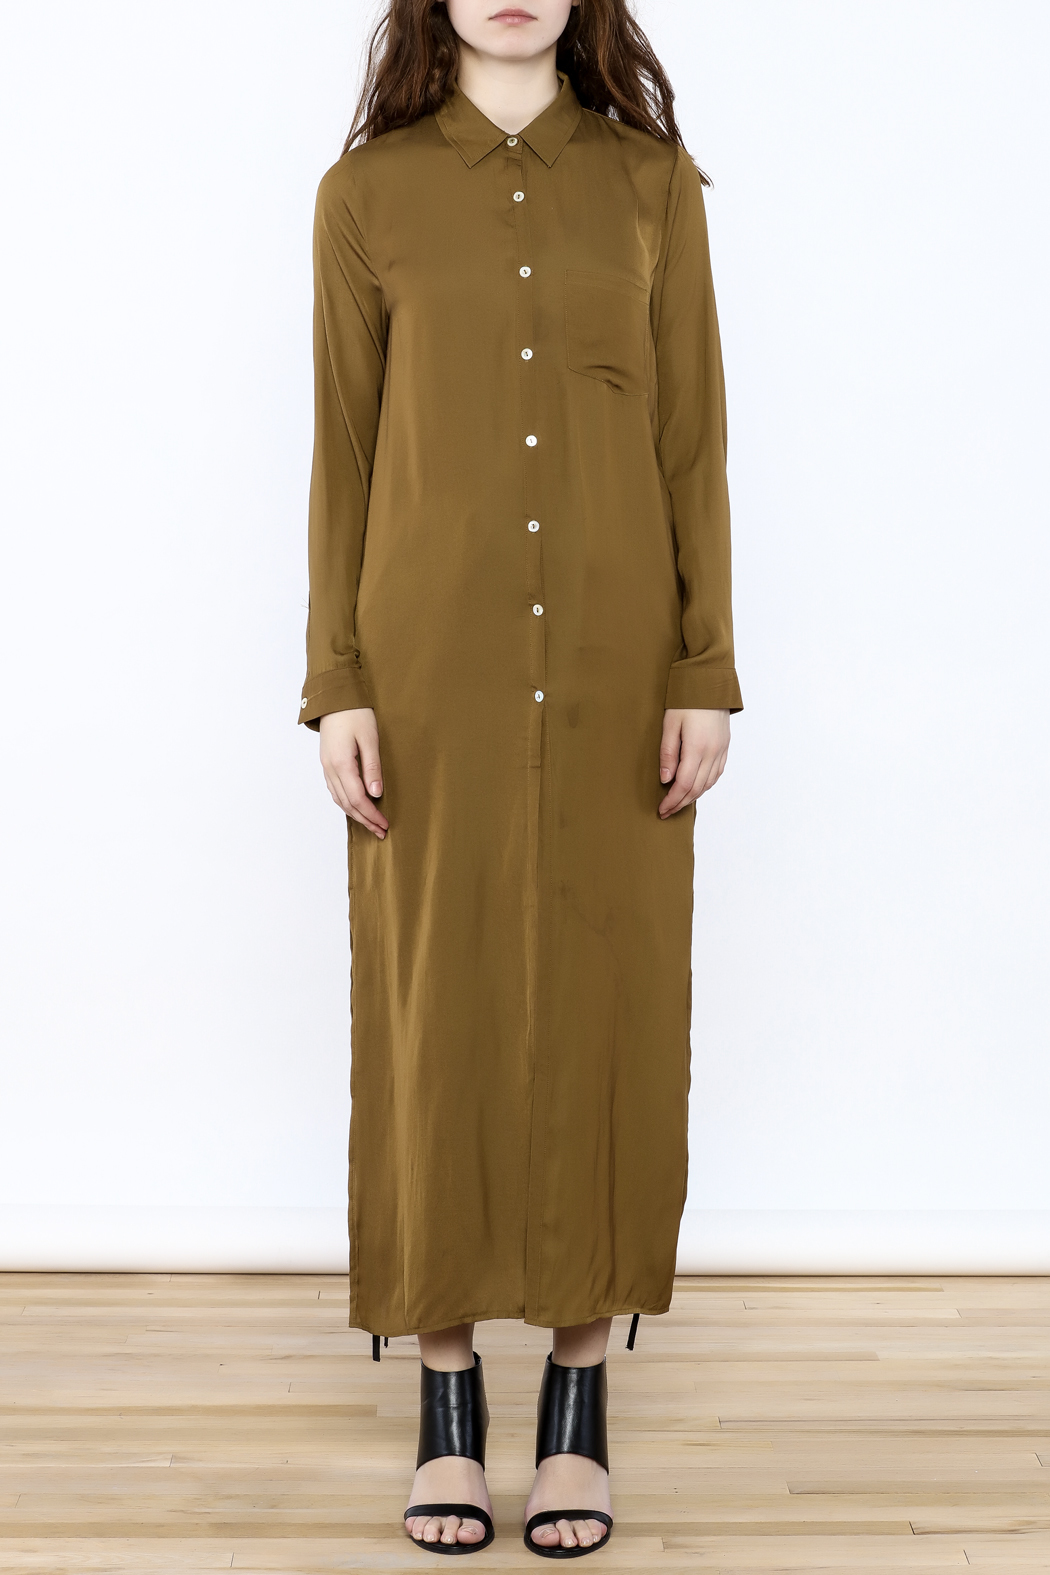 Honey Punch Olive Button-Down Maxi Dress - Front Cropped Image